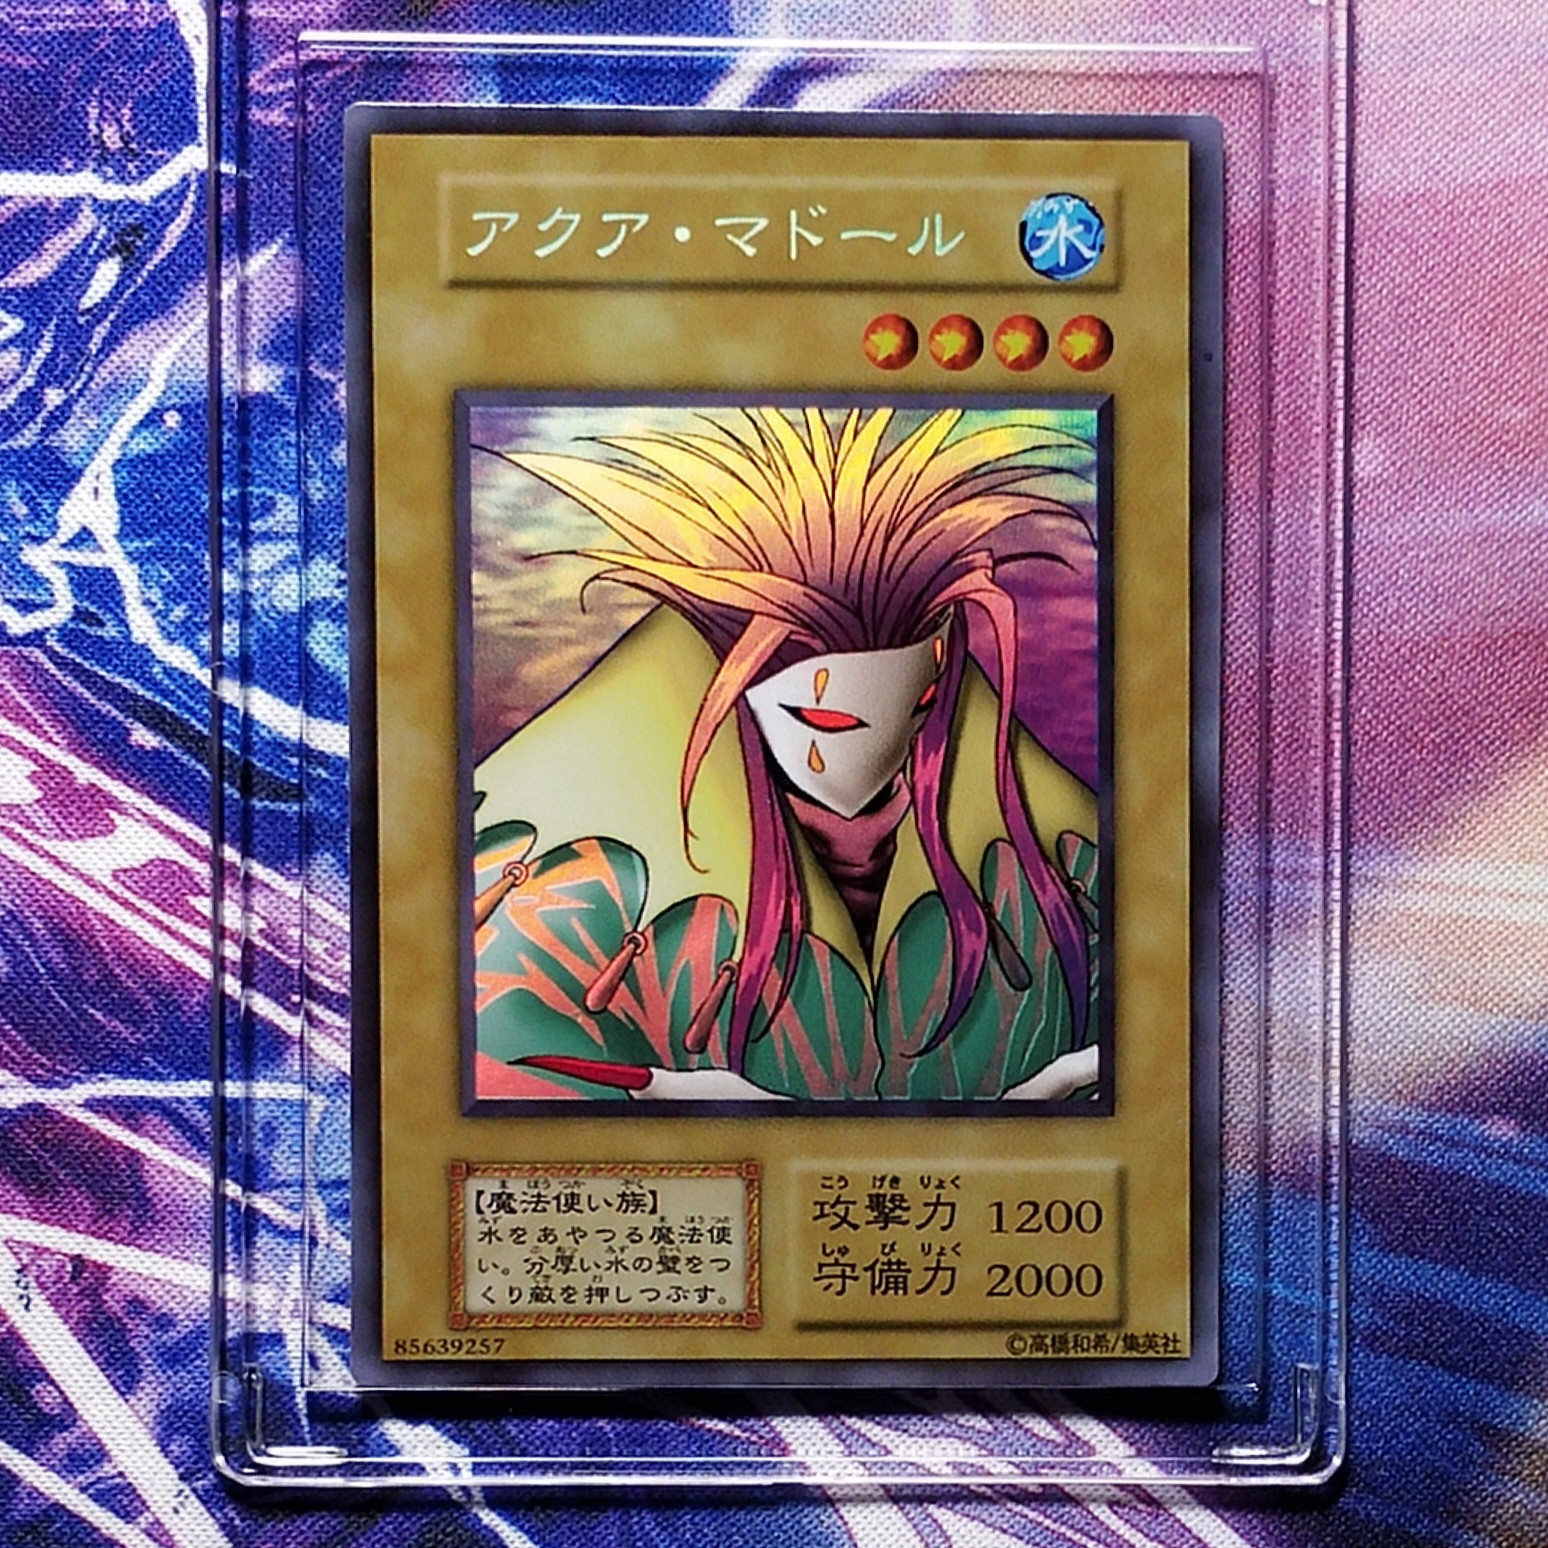 Yu Gi Oh Aqua Madoor DIY Colorful Toys Hobbies Hobby Collectibles Game Collection Anime Cards